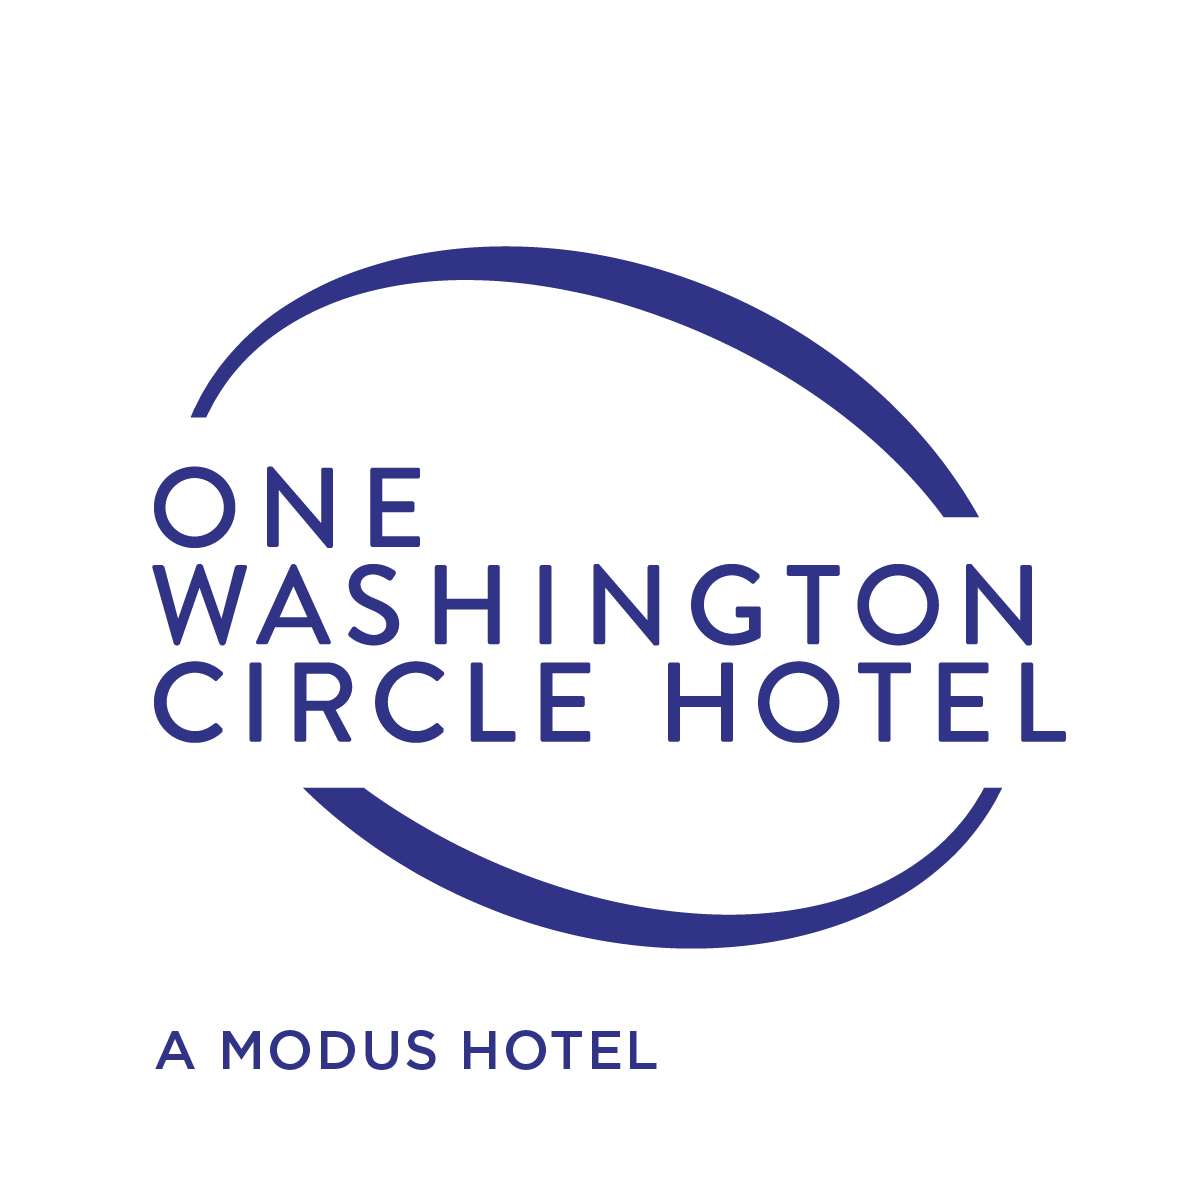 One Washington Circle Hotel Sponsor